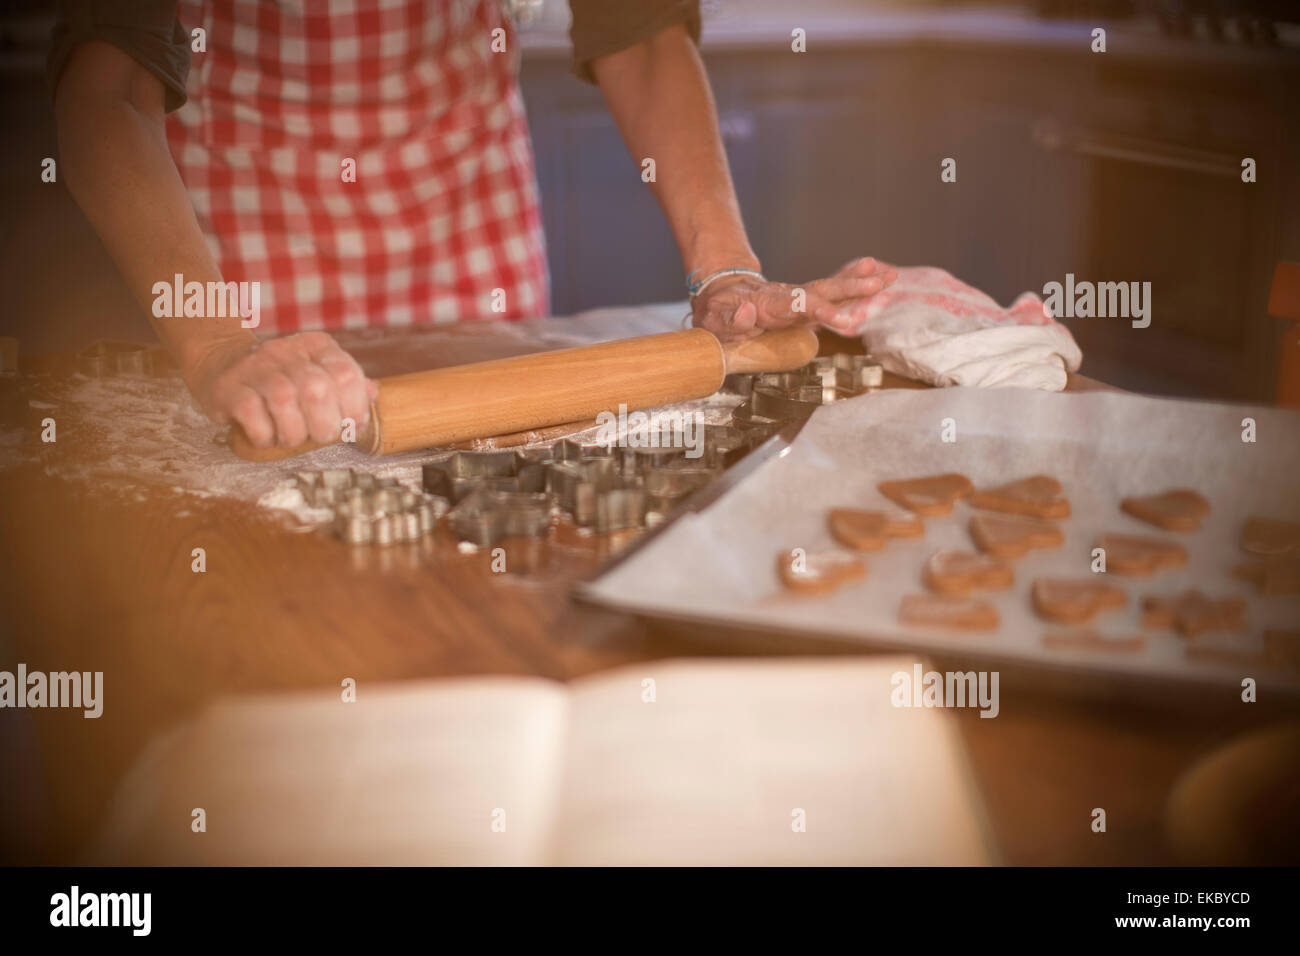 Rolling cinnamon and honey dough to make homemade cookies - Stock Image